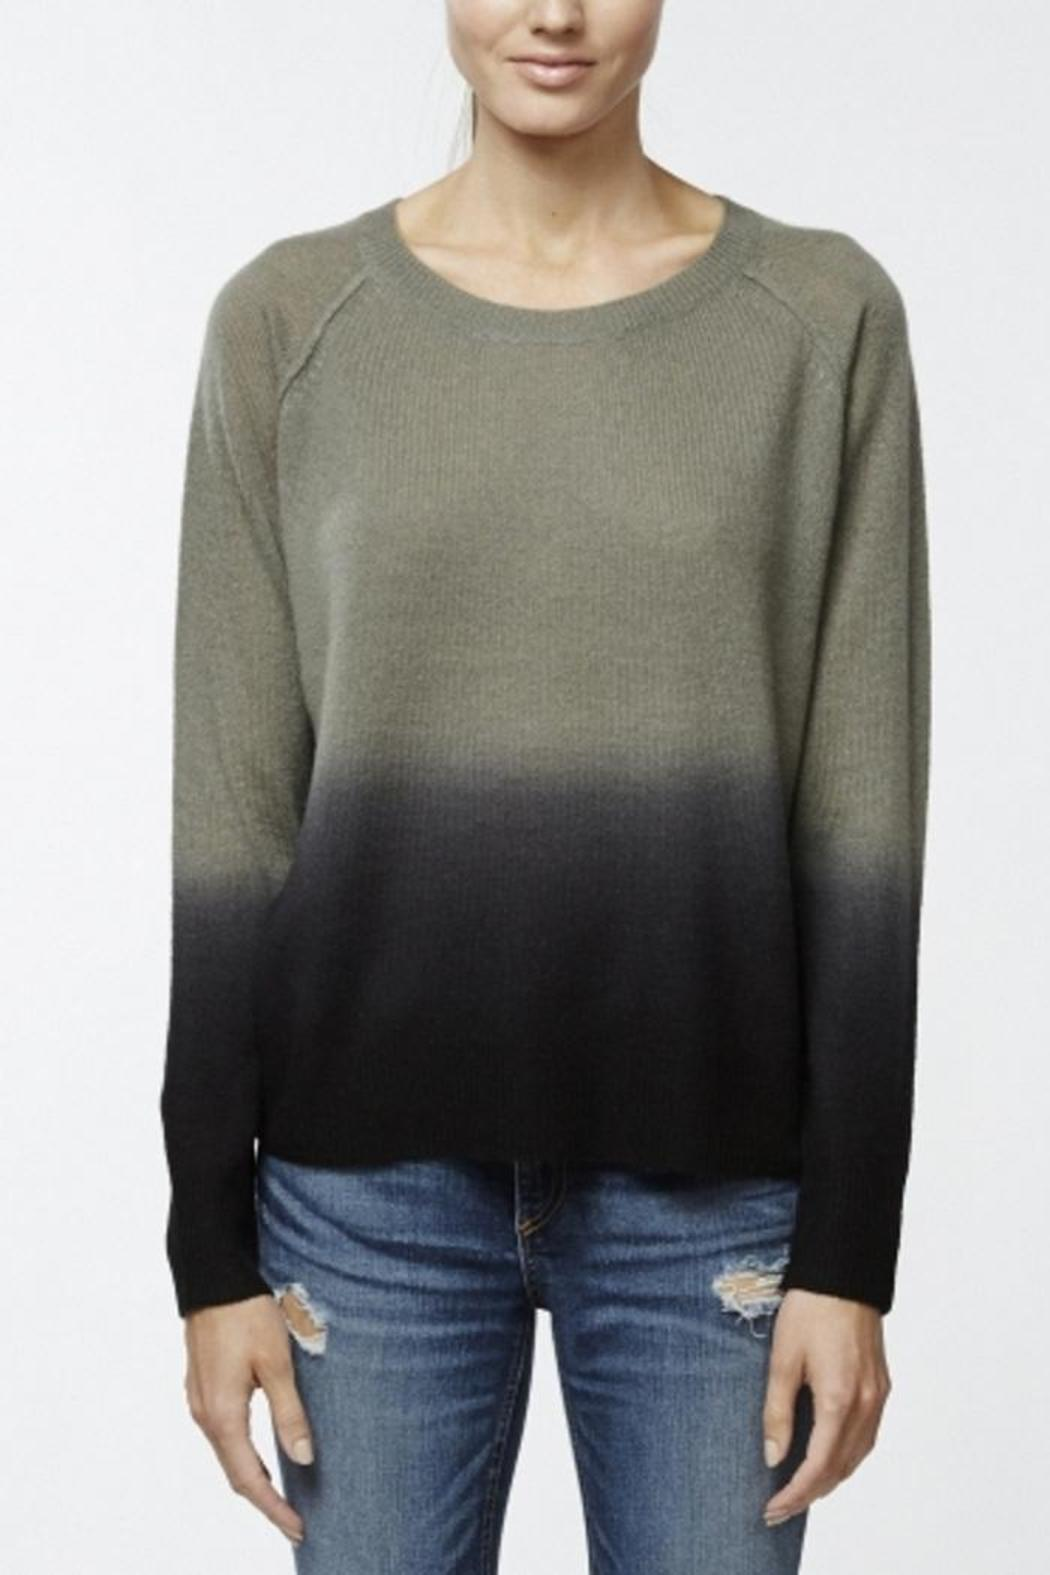 27b797816a5 360 Cashmere Ombre Cashmere Sweater from Orange County by Just ...